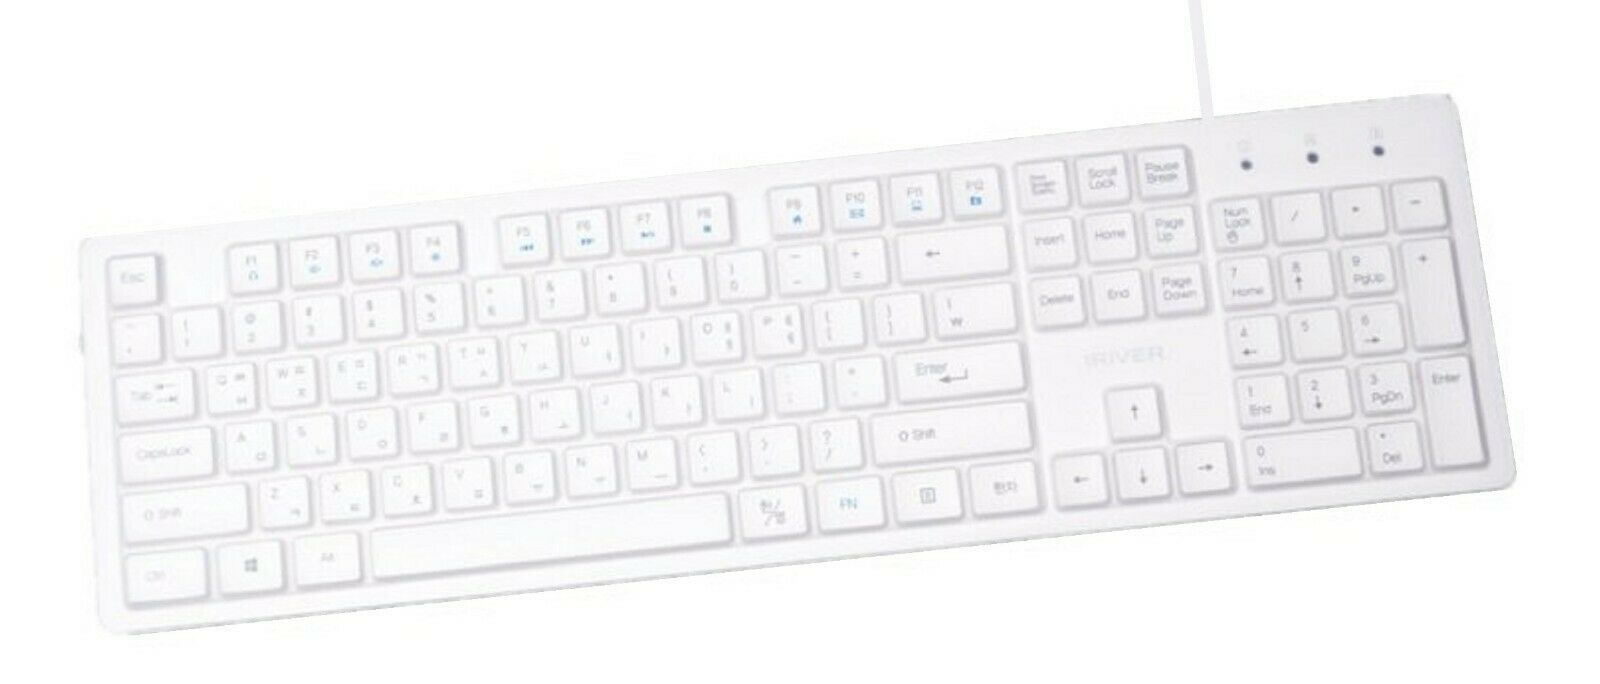 iRiver Korean English Keyboard USB Wired Membrane Cover Skin Protector (White)